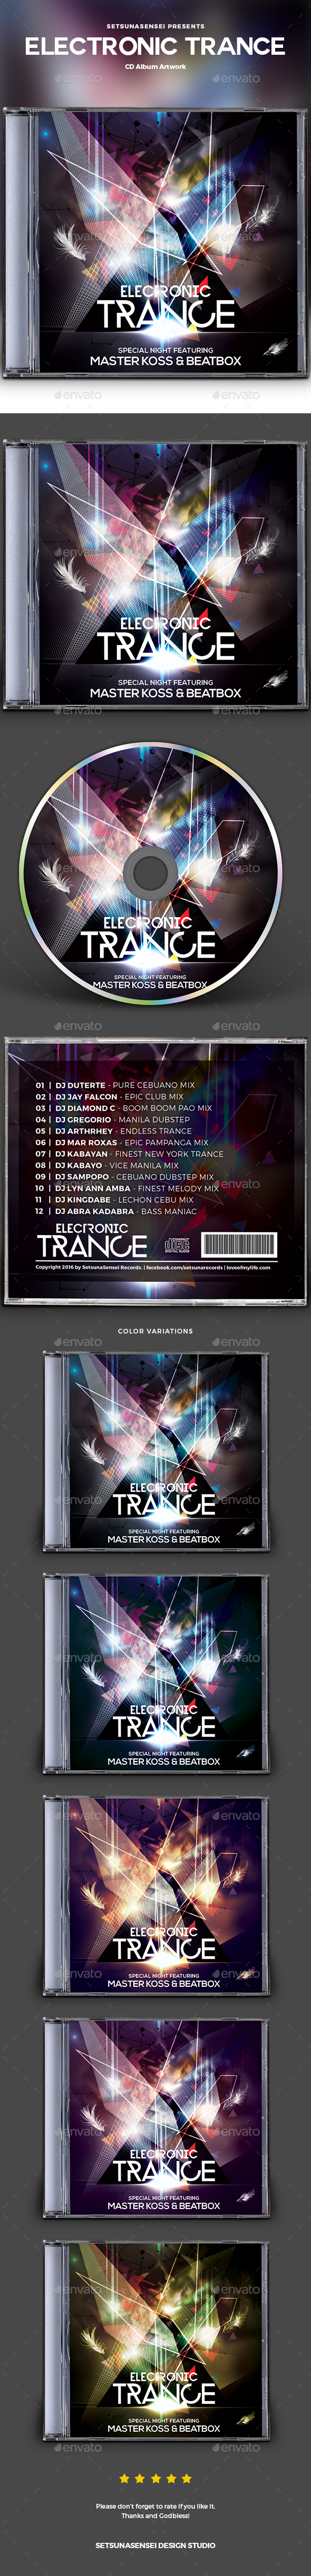 GraphicRiver Electronic Trance CD Album Artwork 20871106